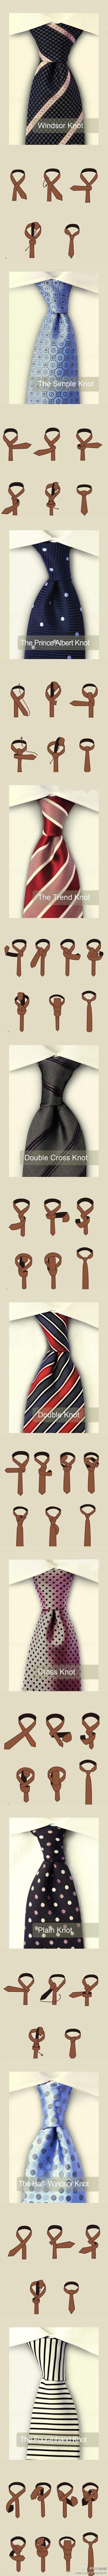 Different ways to tie a Tie  I do have two sons!  This might come in handy later!